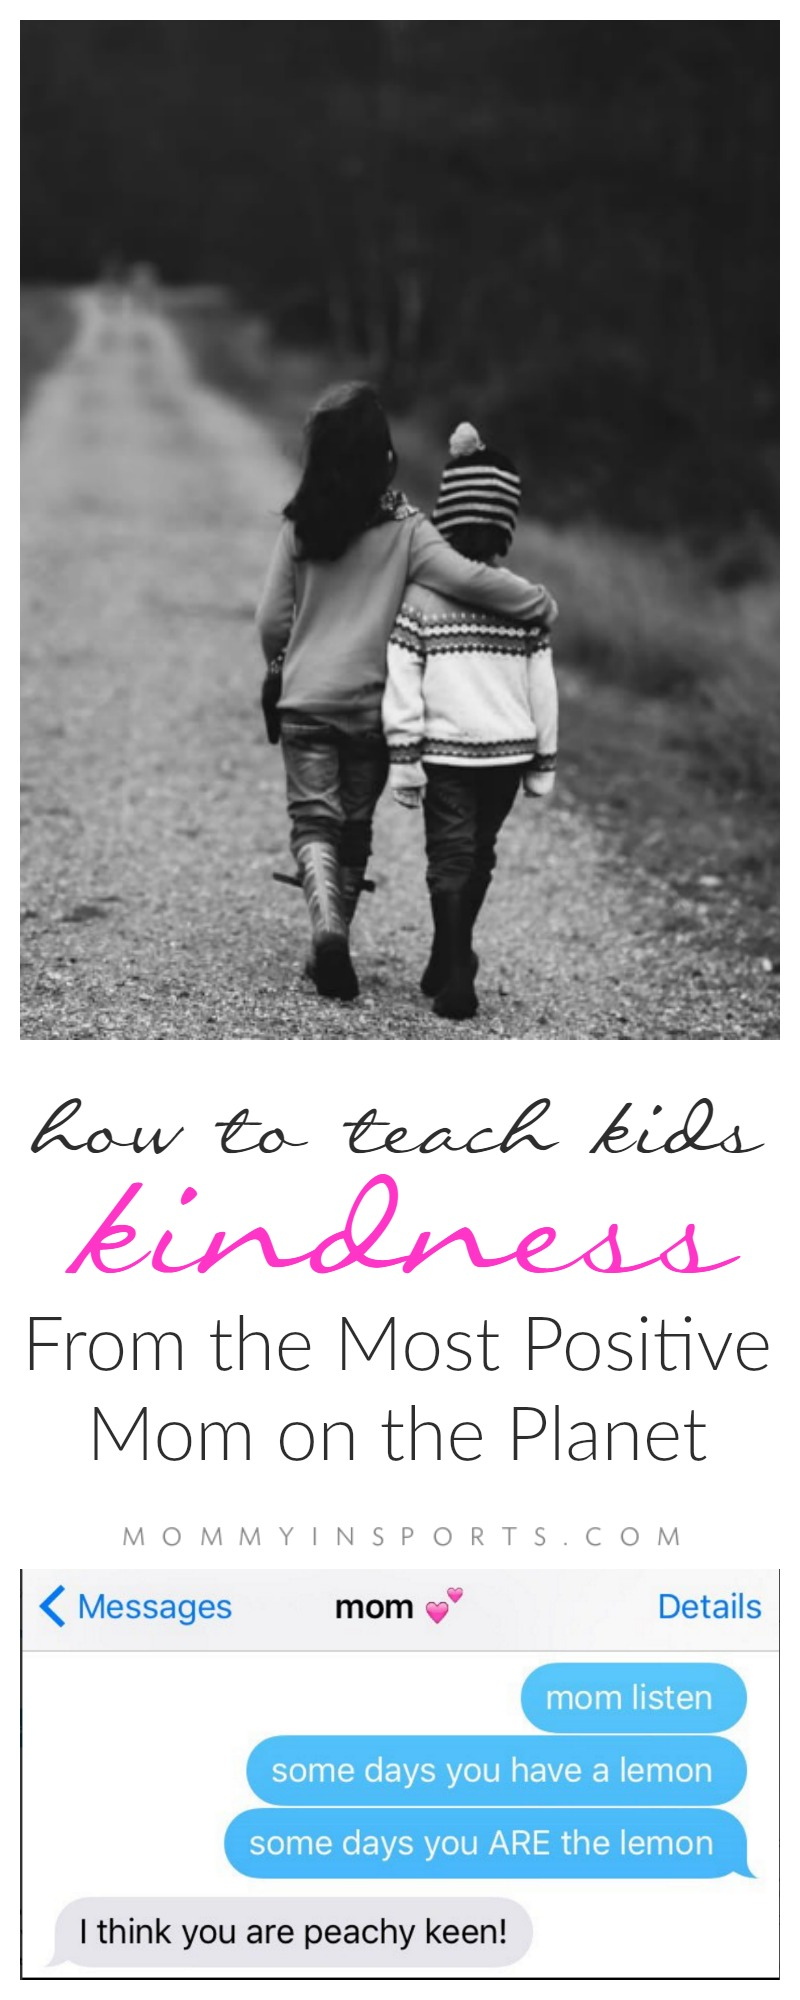 how-to-teach-kids-kindness-from-the-most-positive-mom-on-the-planet